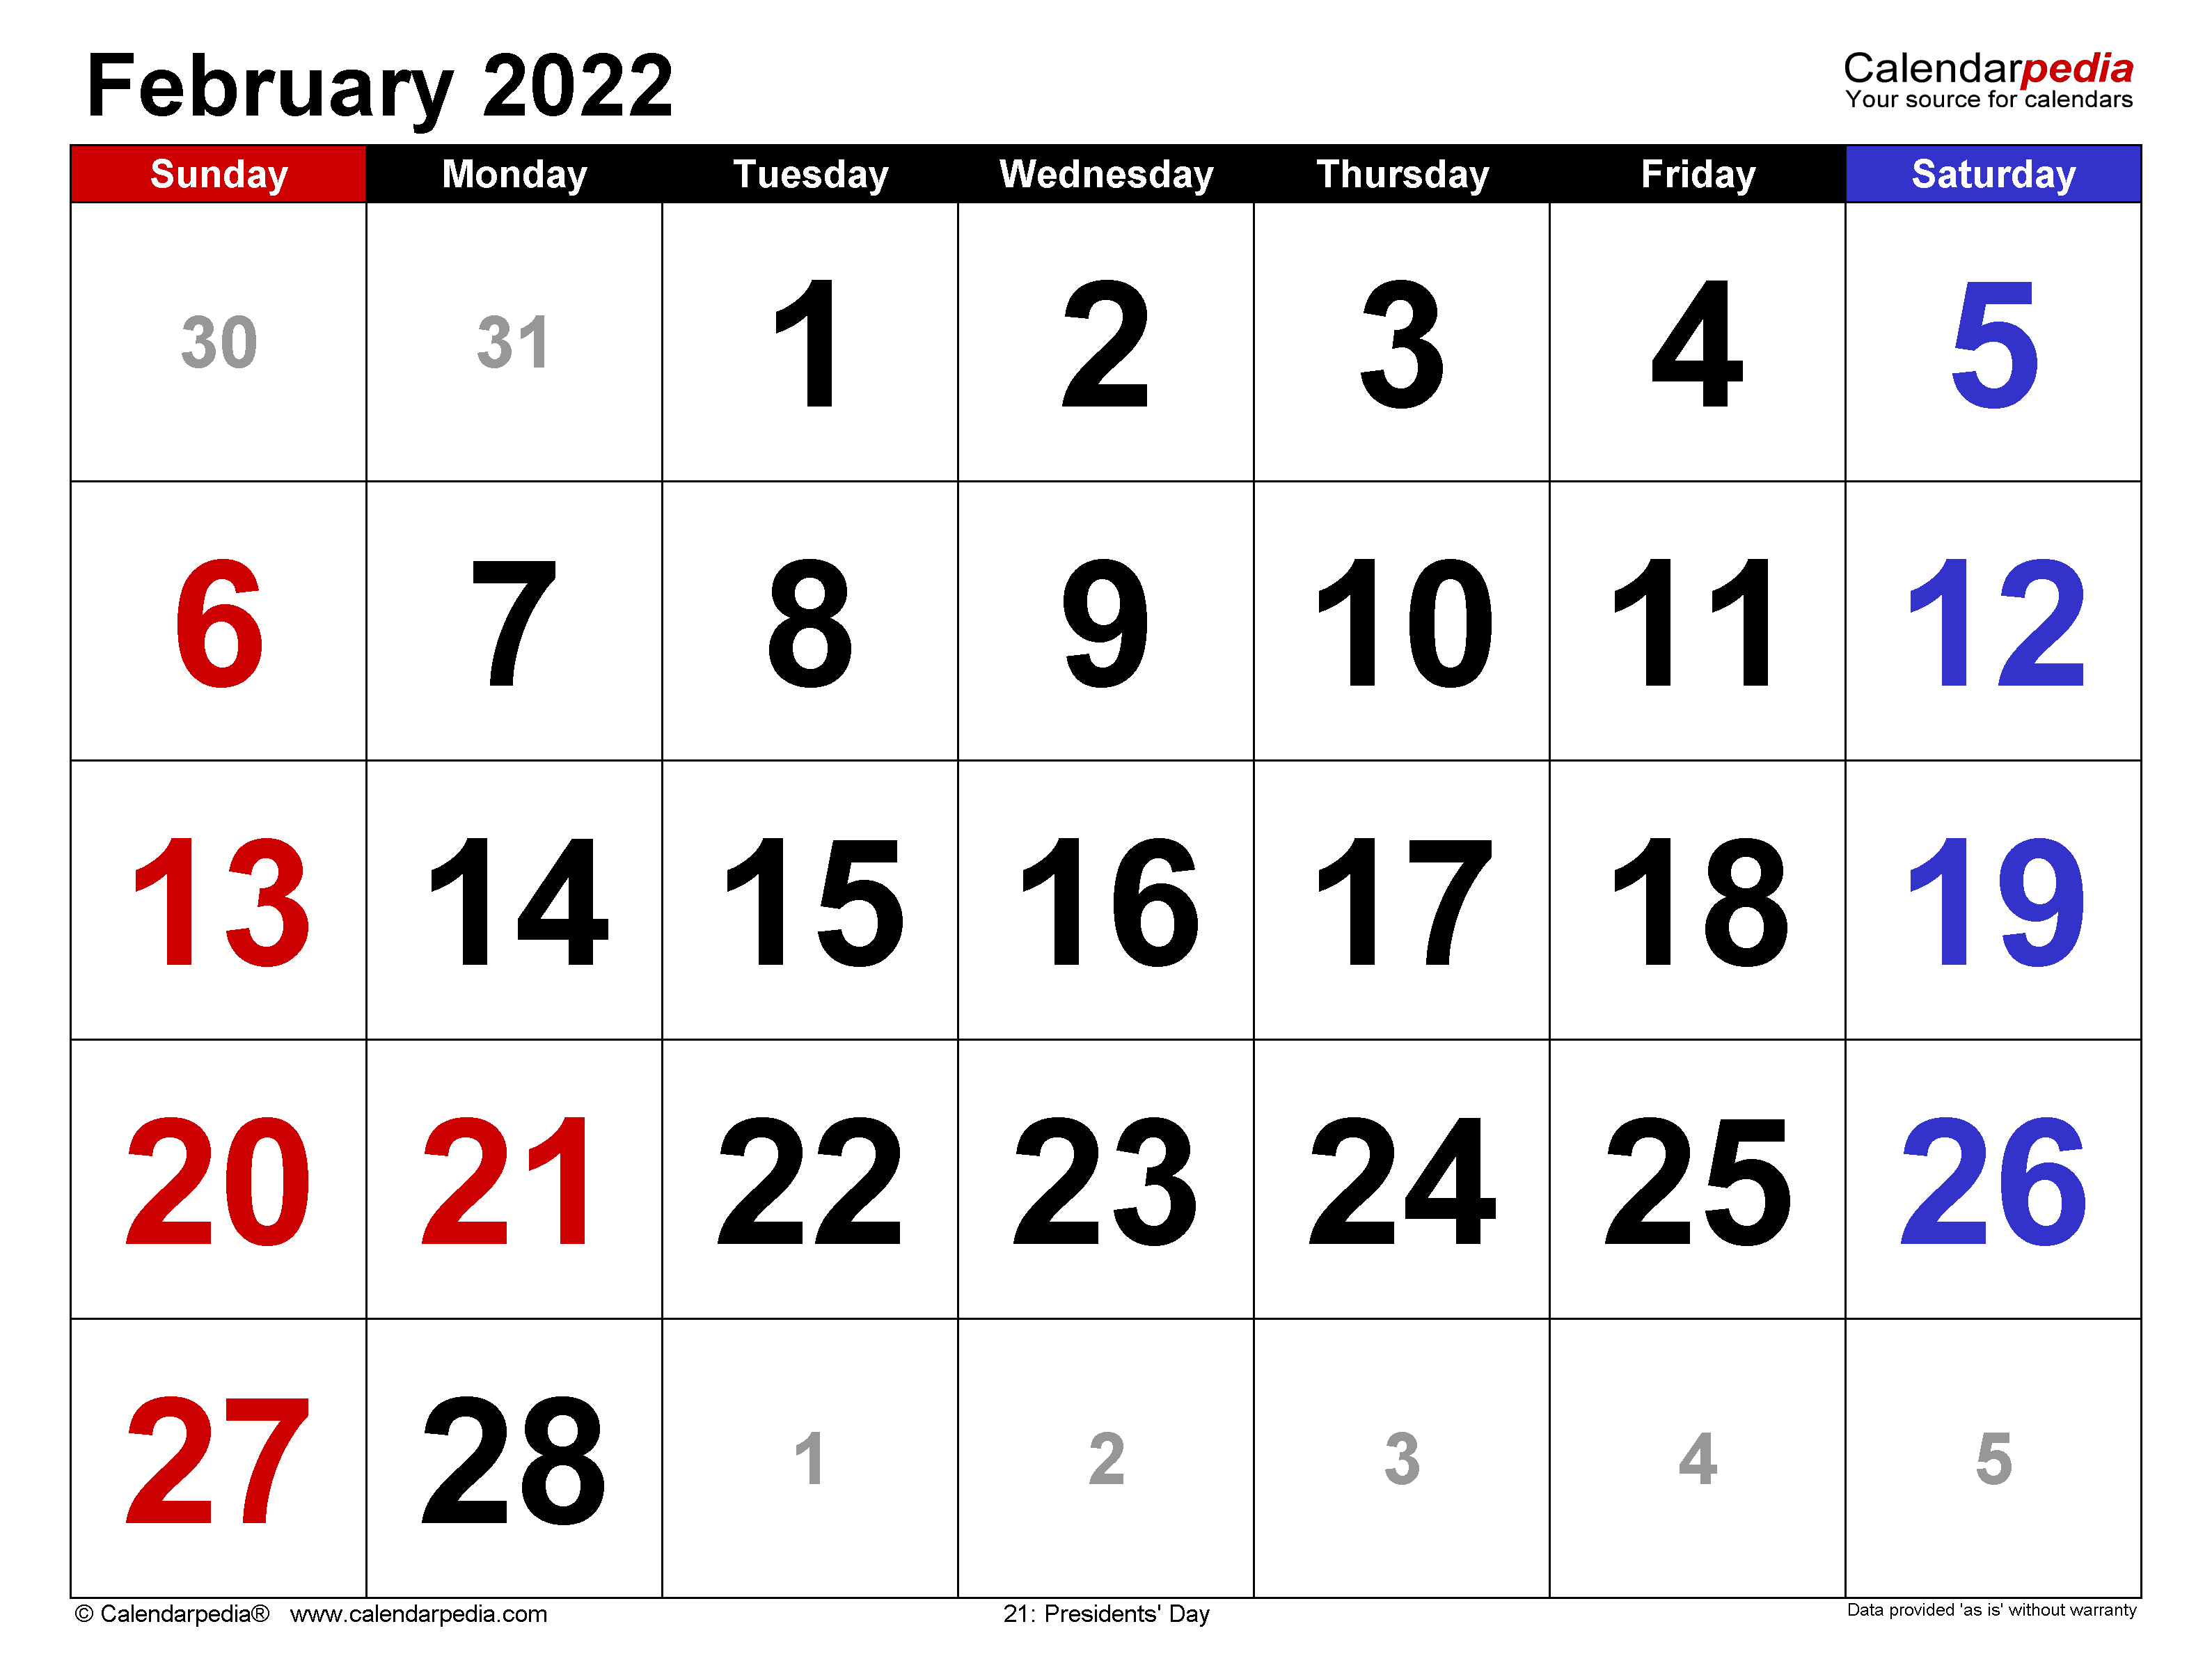 February 2022 - calendar templates for Word, Excel and PDF